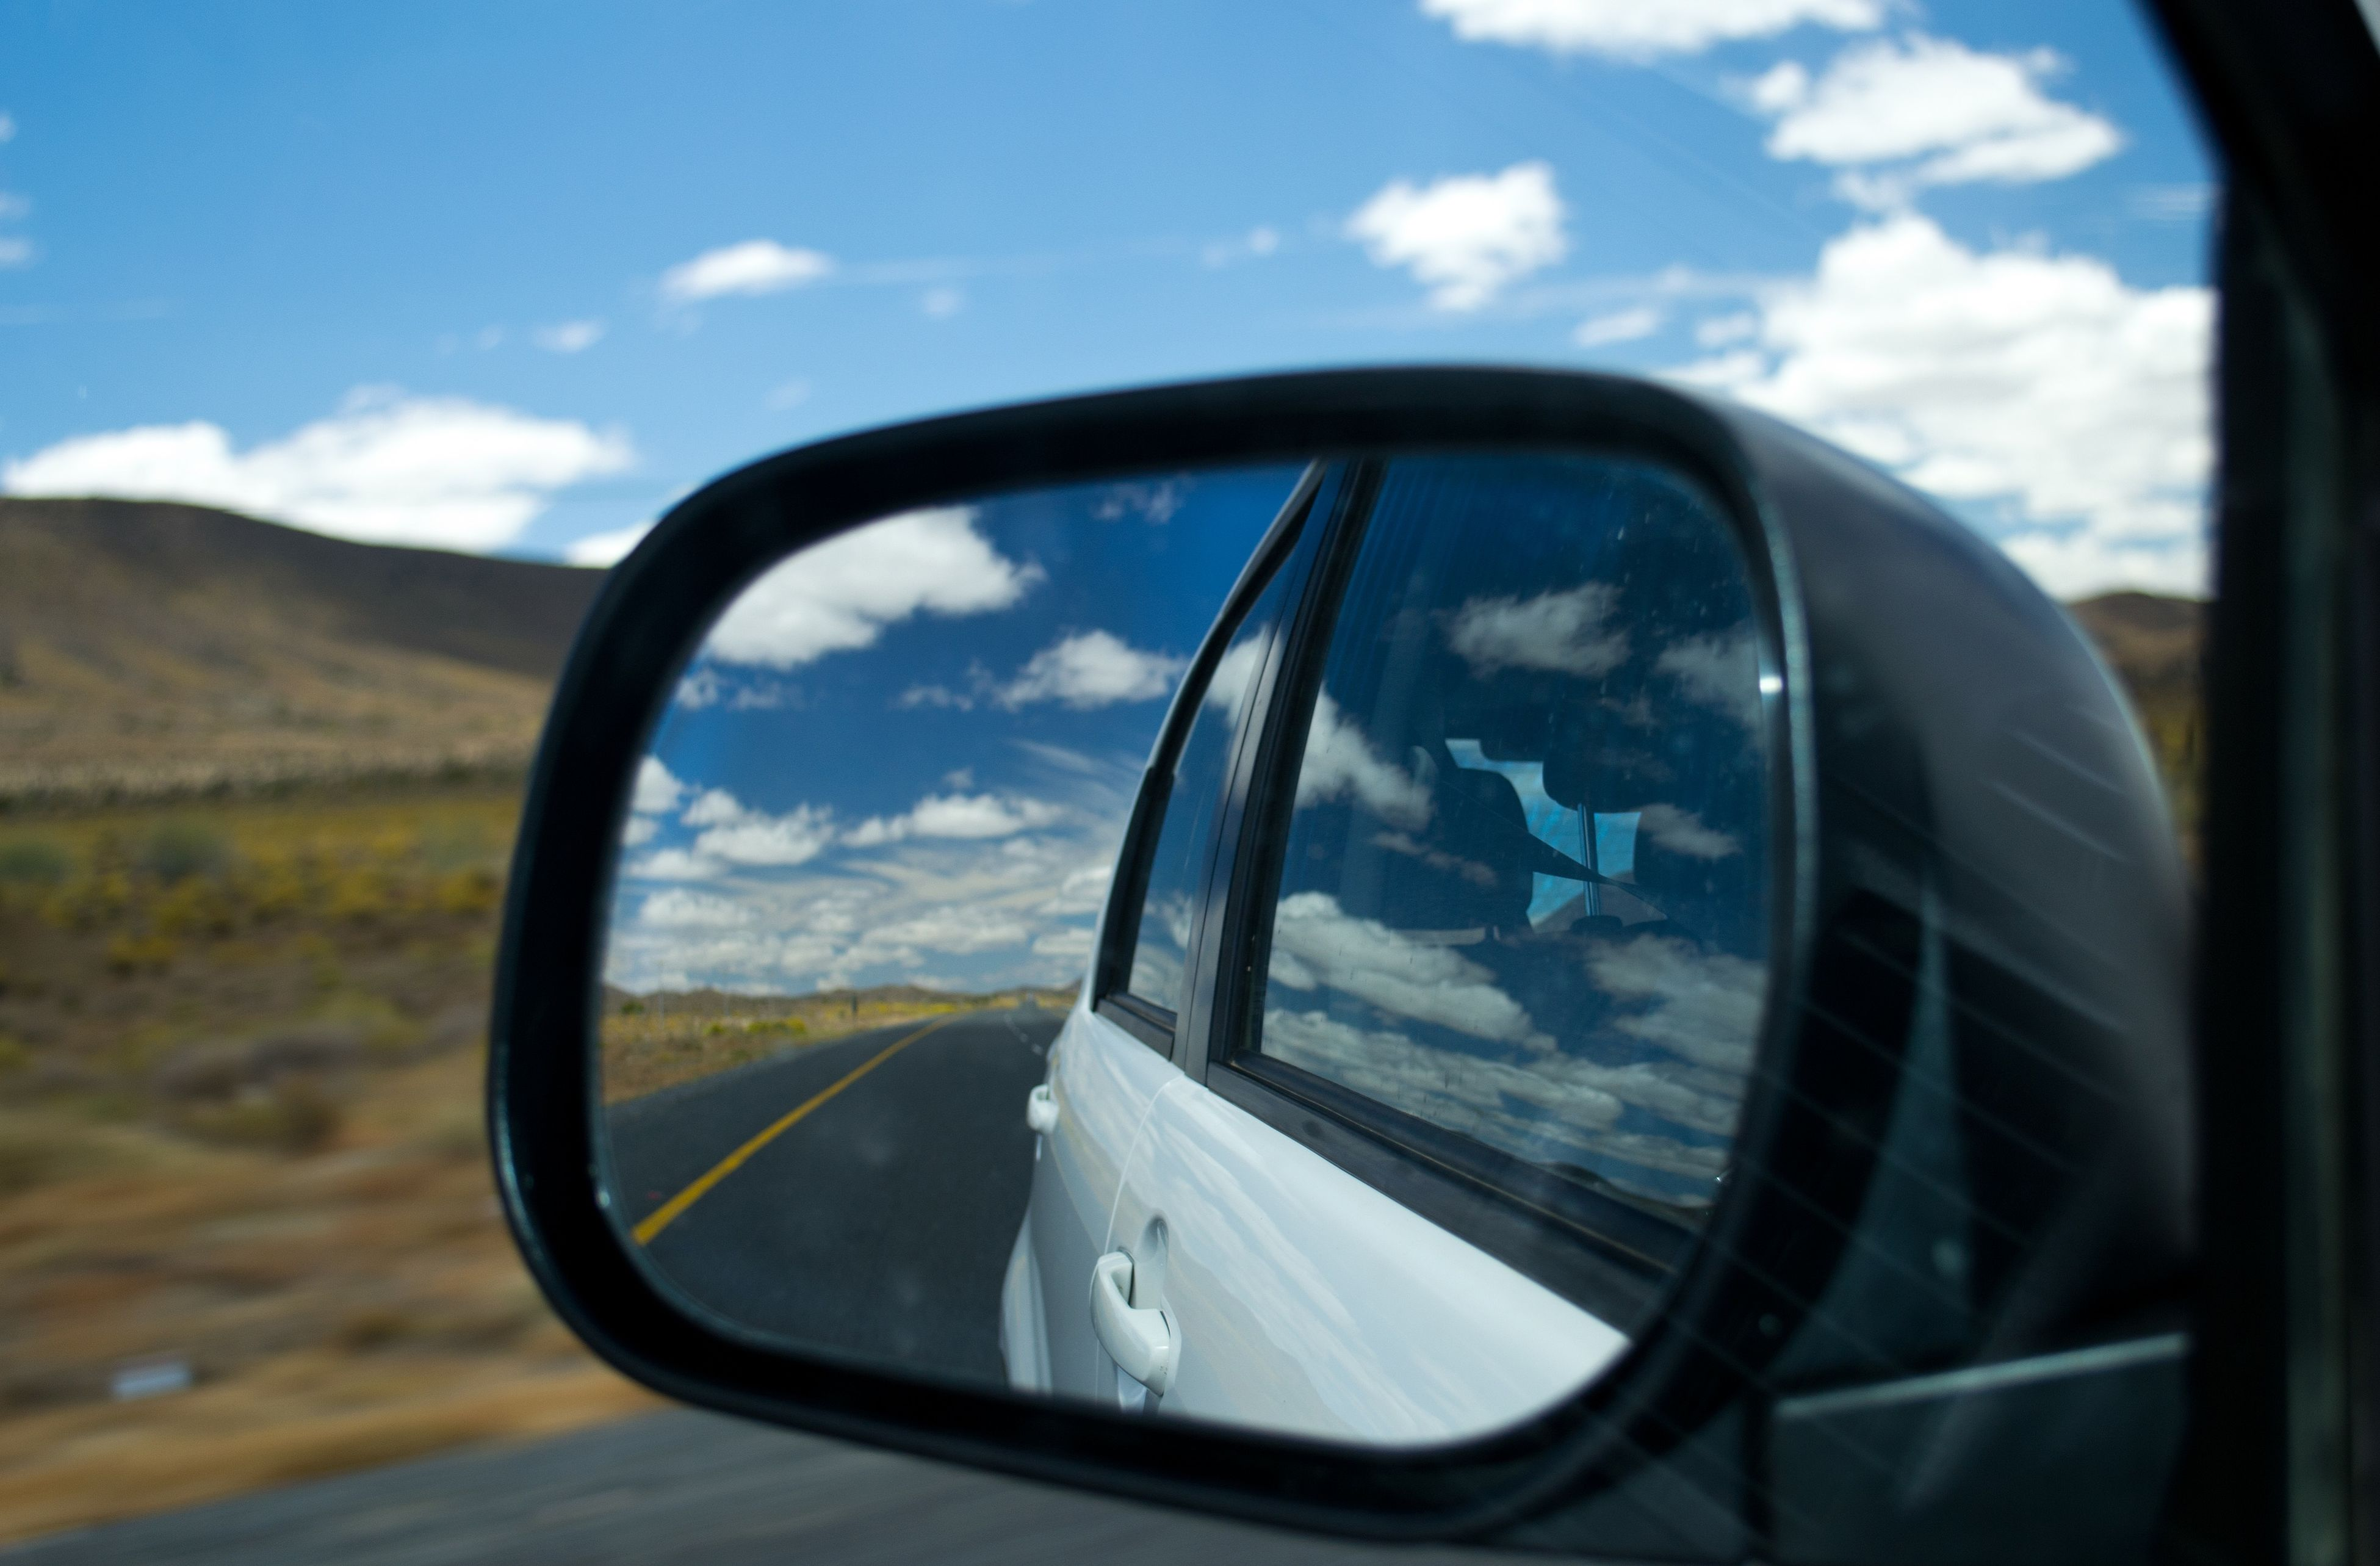 transportation, mode of transport, side-view mirror, land vehicle, car, sky, reflection, vehicle interior, glass - material, transparent, road, part of, cloud - sky, car interior, cropped, cloud, close-up, travel, street, landscape